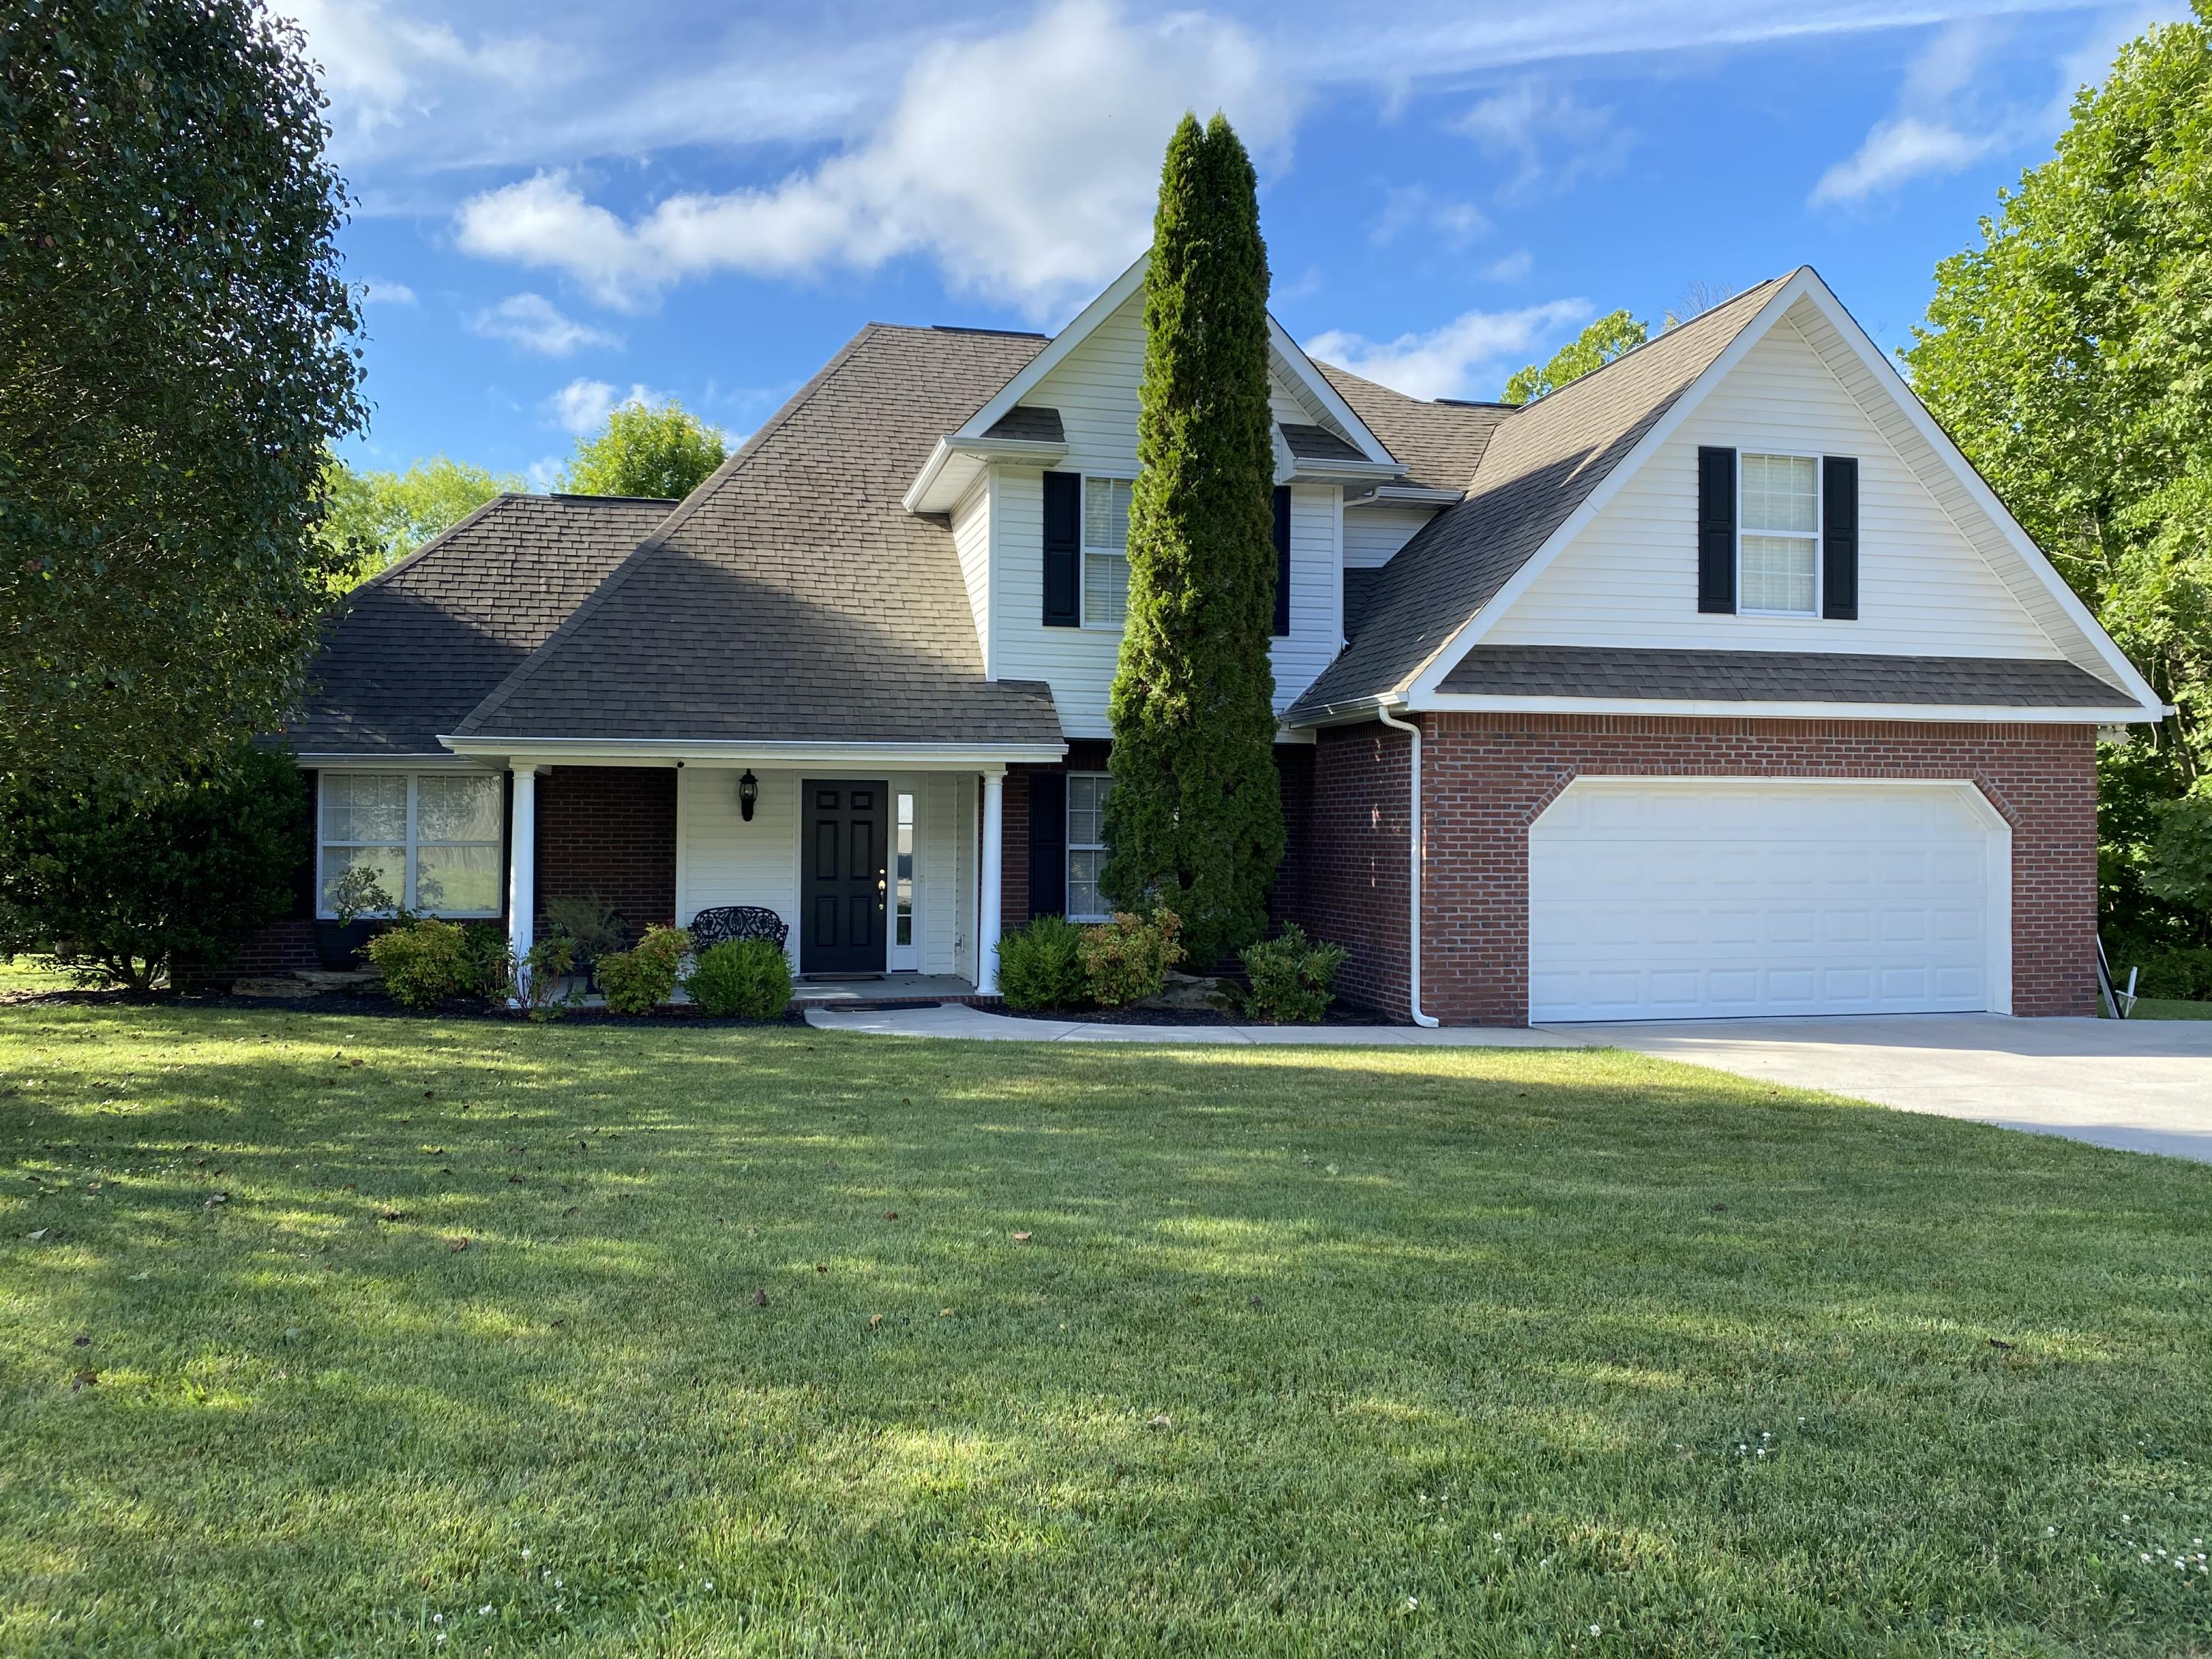 6856 Cardindale Drive, Knoxville, Tennessee 37918, 4 Bedrooms Bedrooms, ,2 BathroomsBathrooms,Single Family,For Sale,Cardindale,1120523